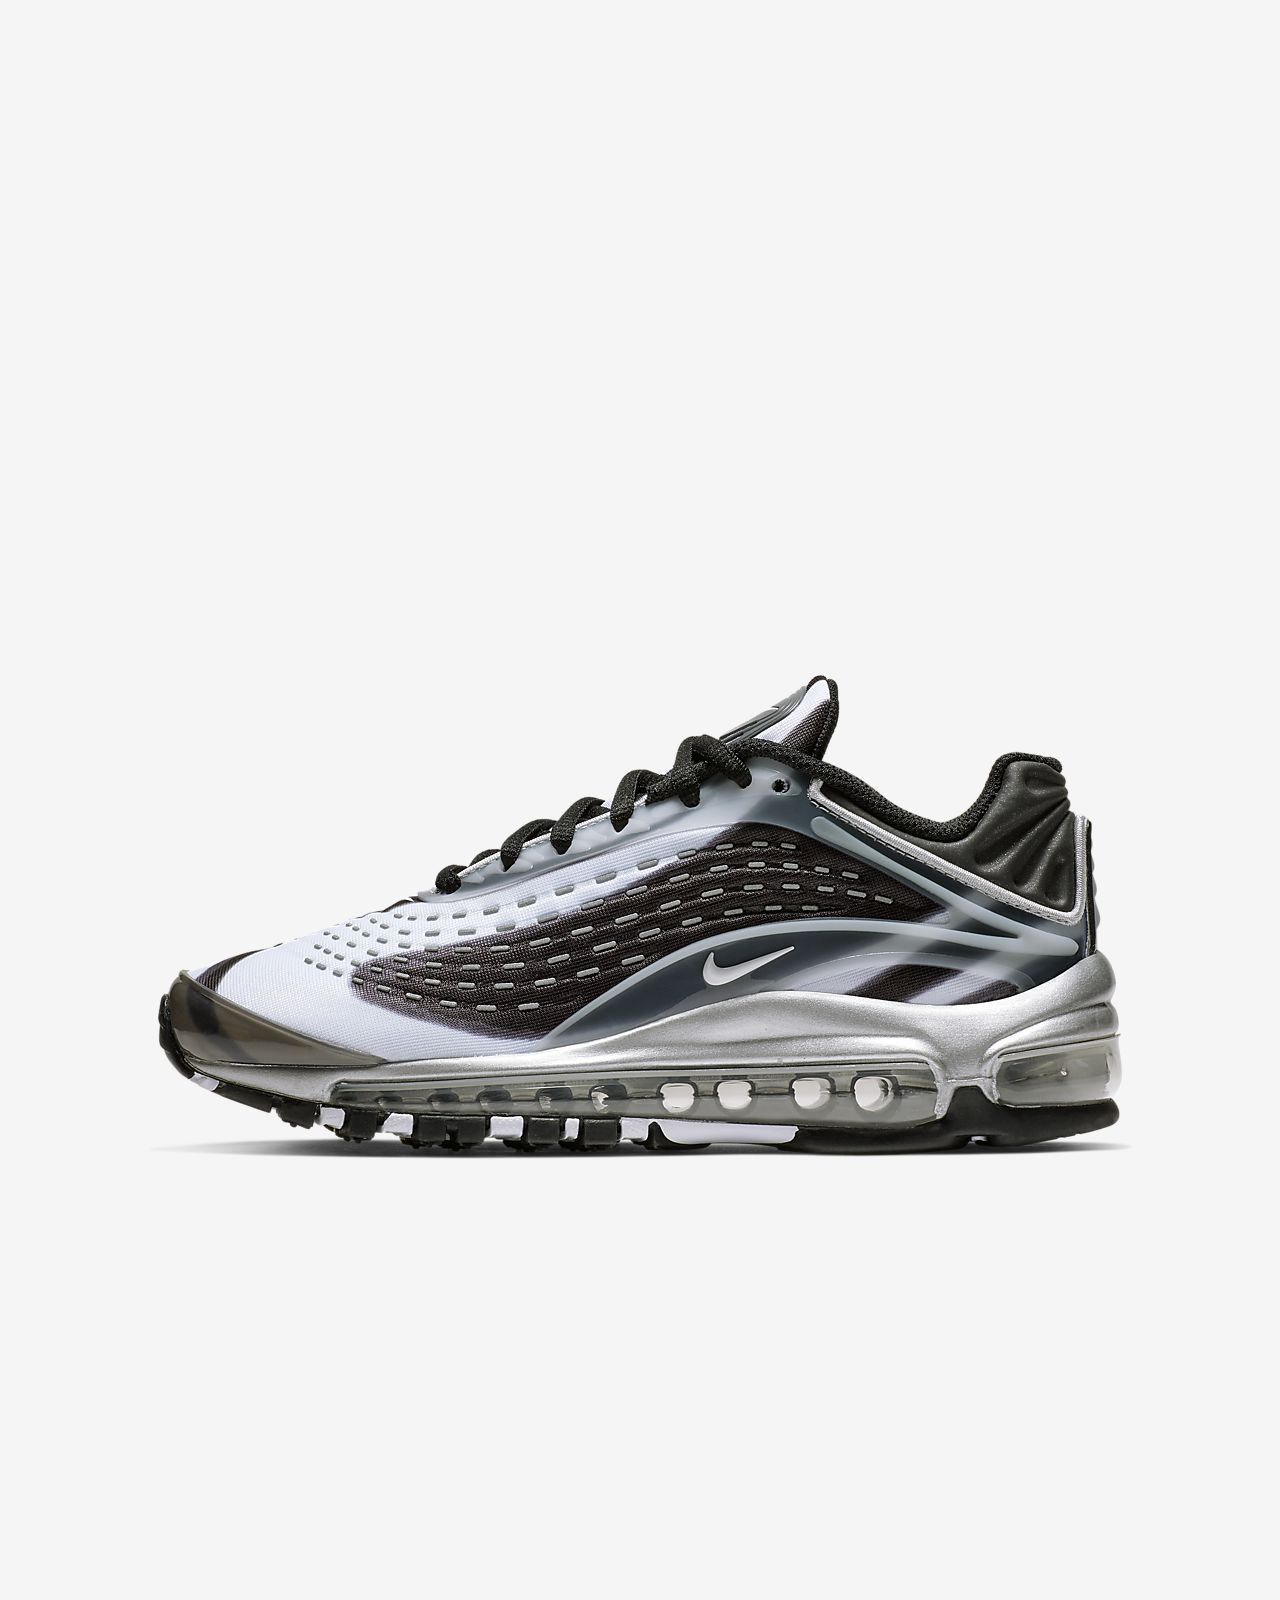 san francisco 97aa8 c9a53 ... Nike Air Max Deluxe Big Kids  Shoe